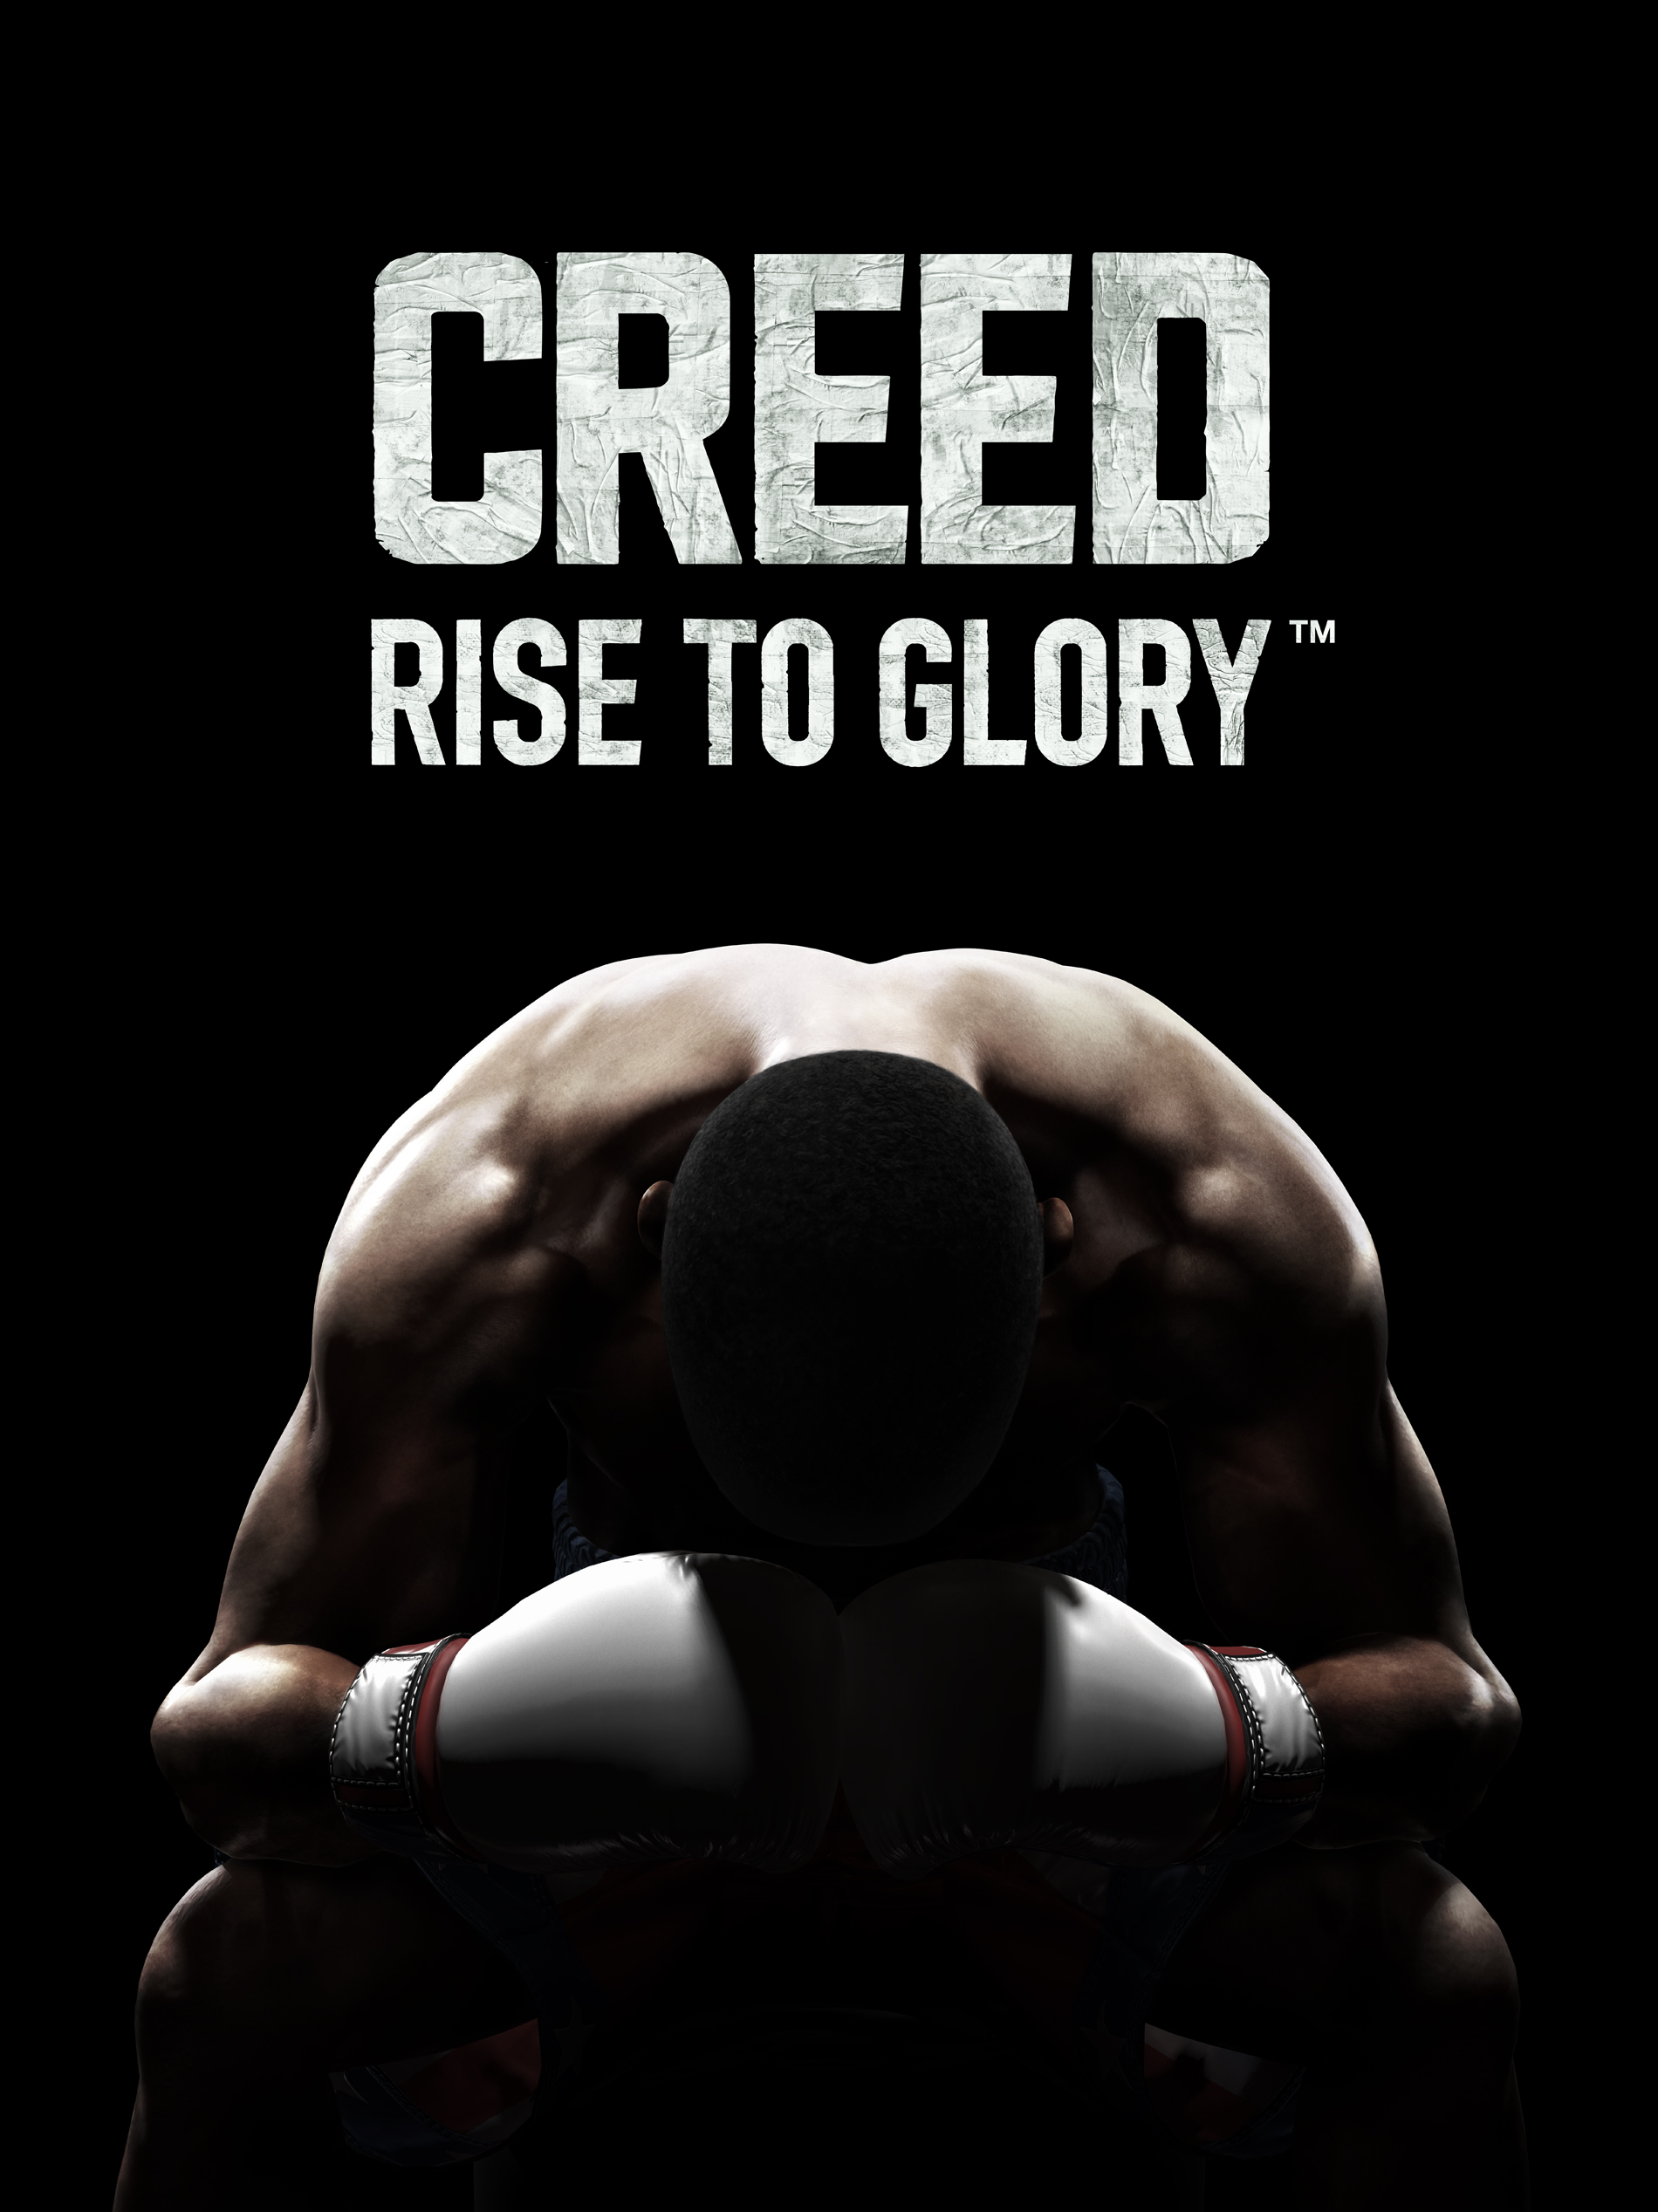 Creed Rise to GLory Teaser Art